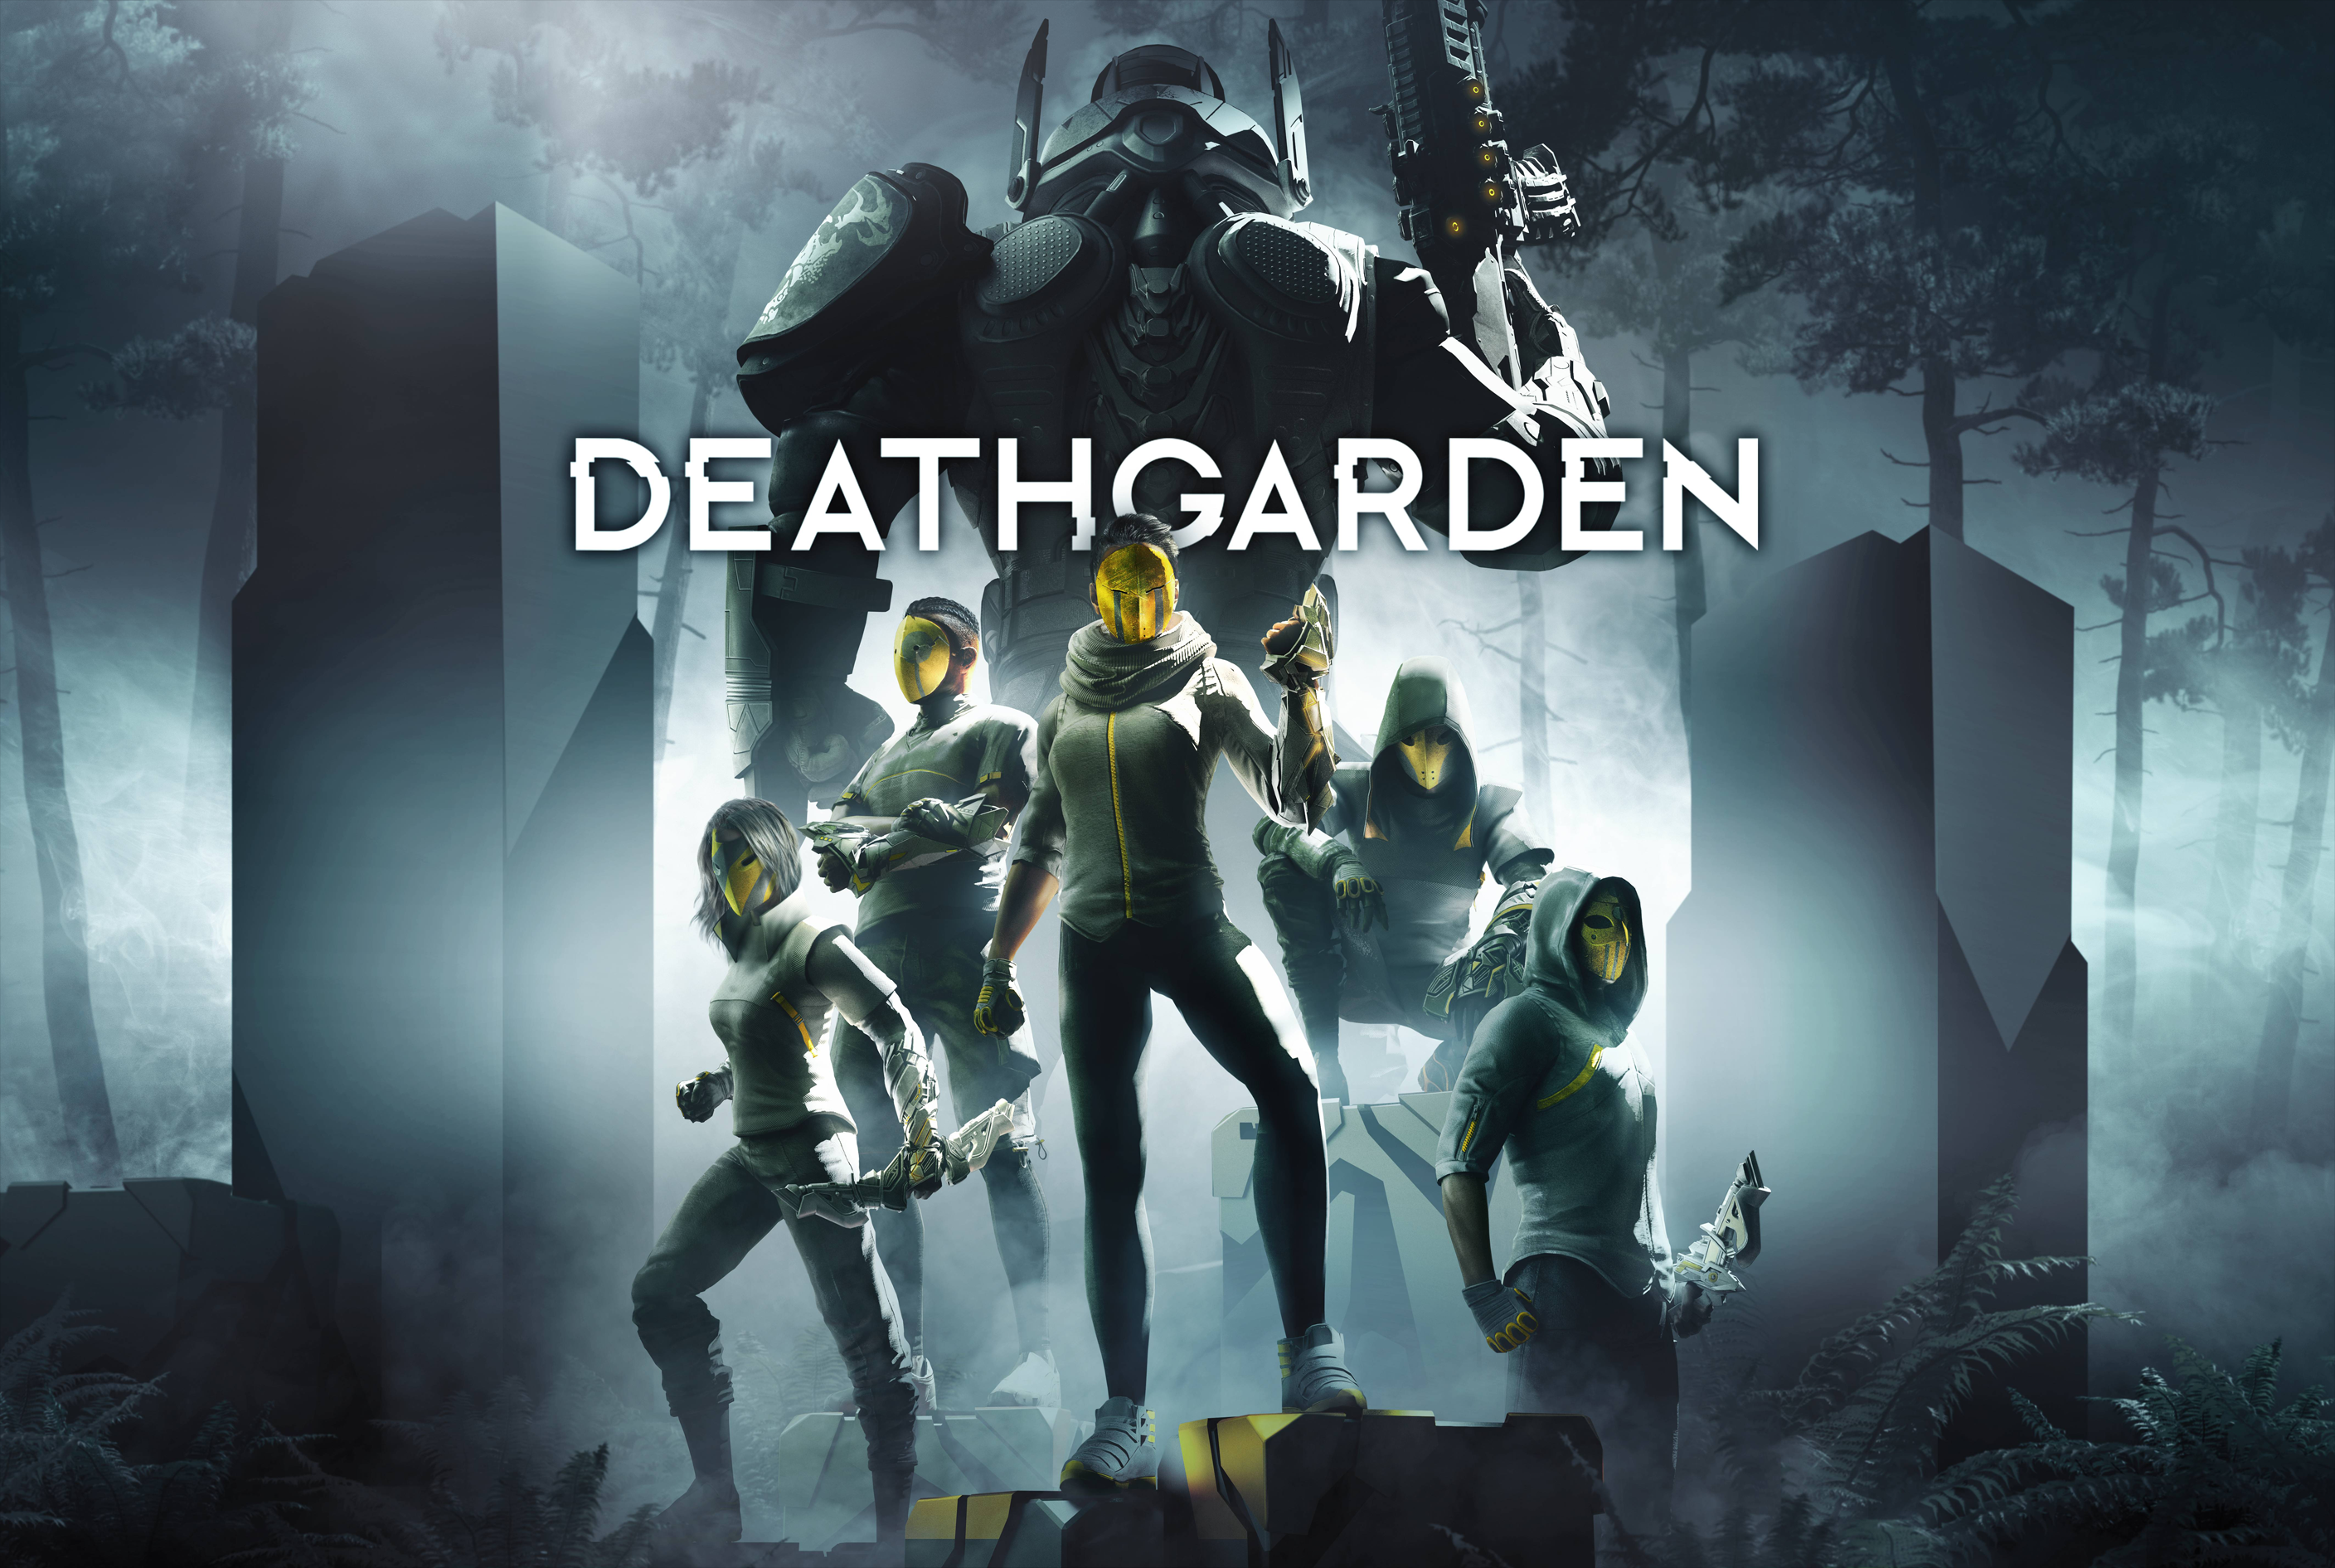 DEATHGARDEN HITS STEAM EARLY ACCESS ON AUG. 14 W/FREE WEEK